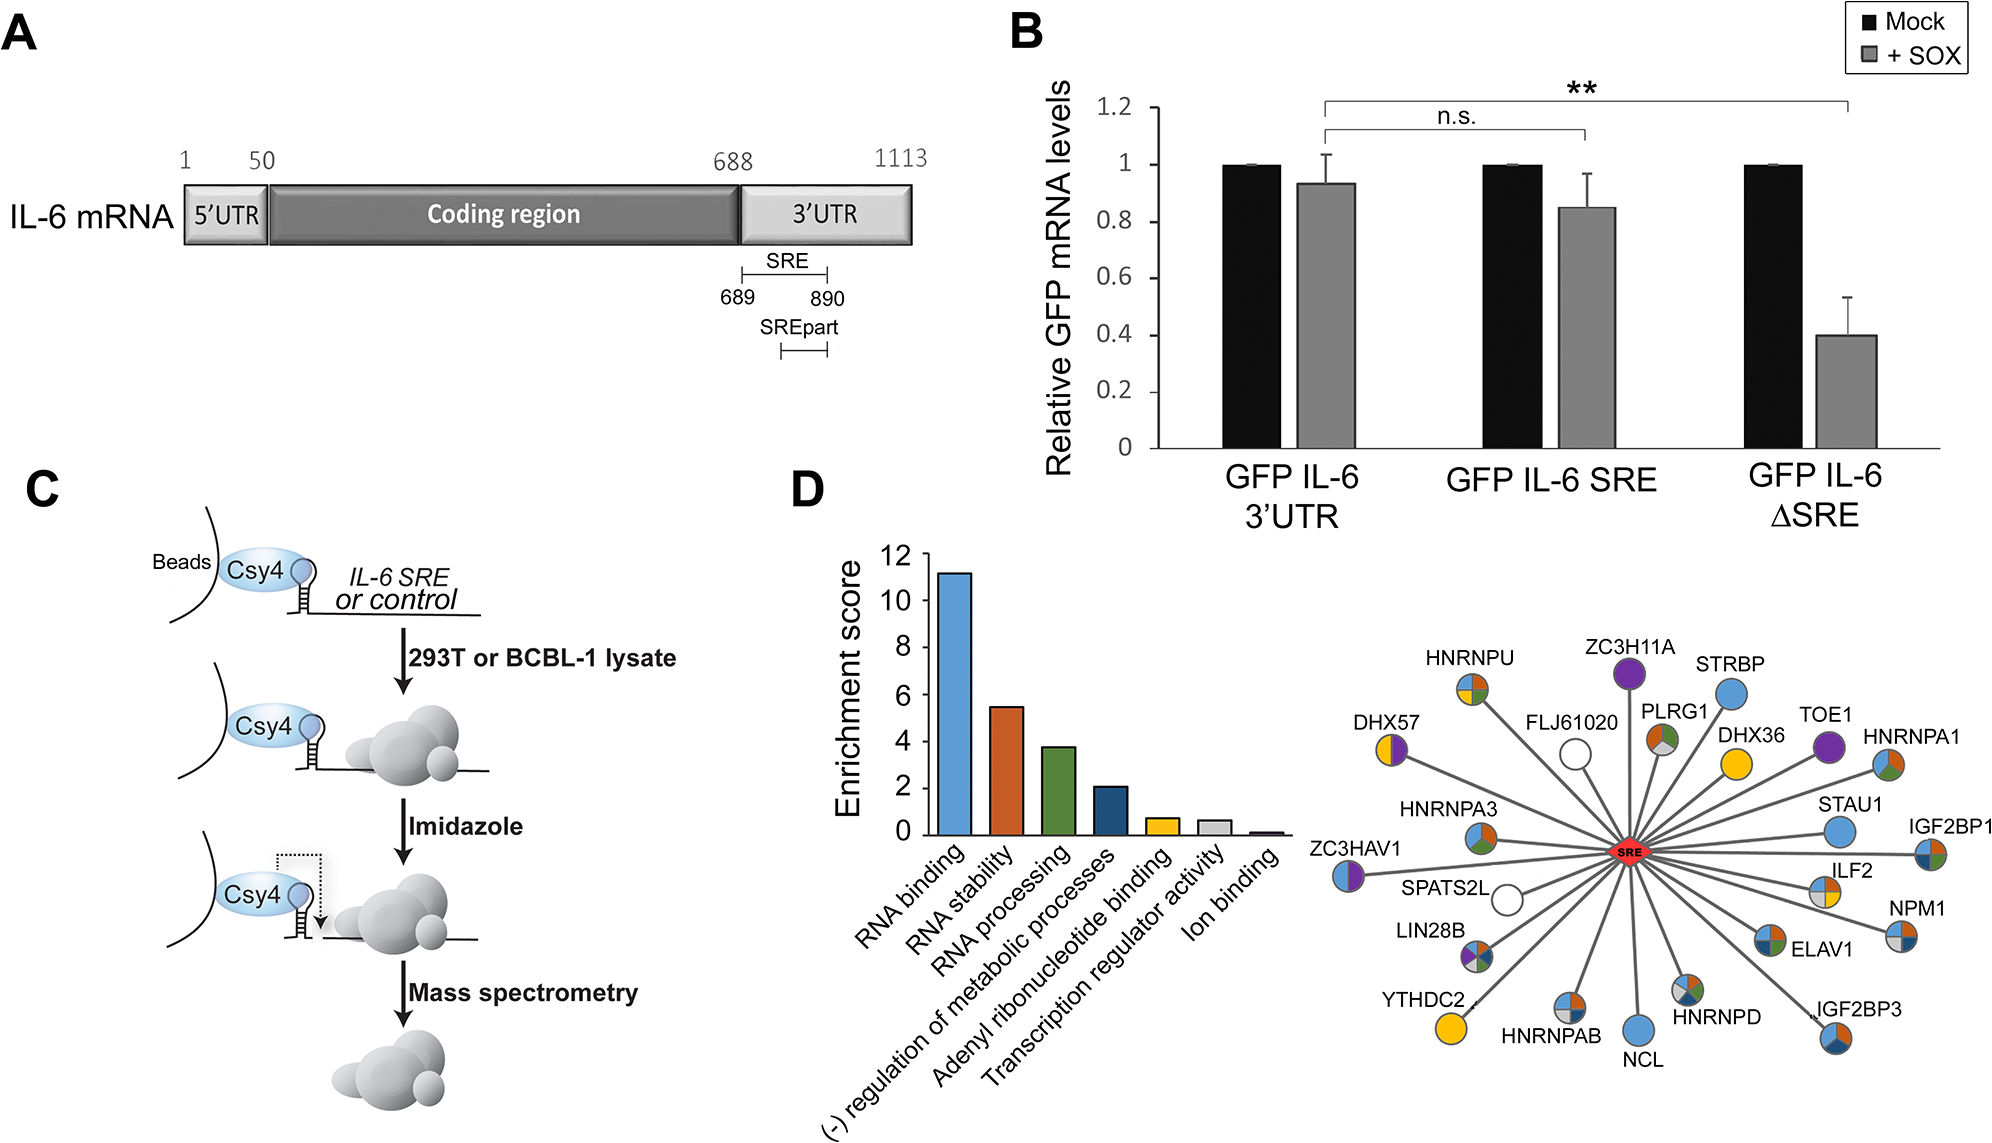 Identification of the RNP complex associated with the IL-6 SRE.